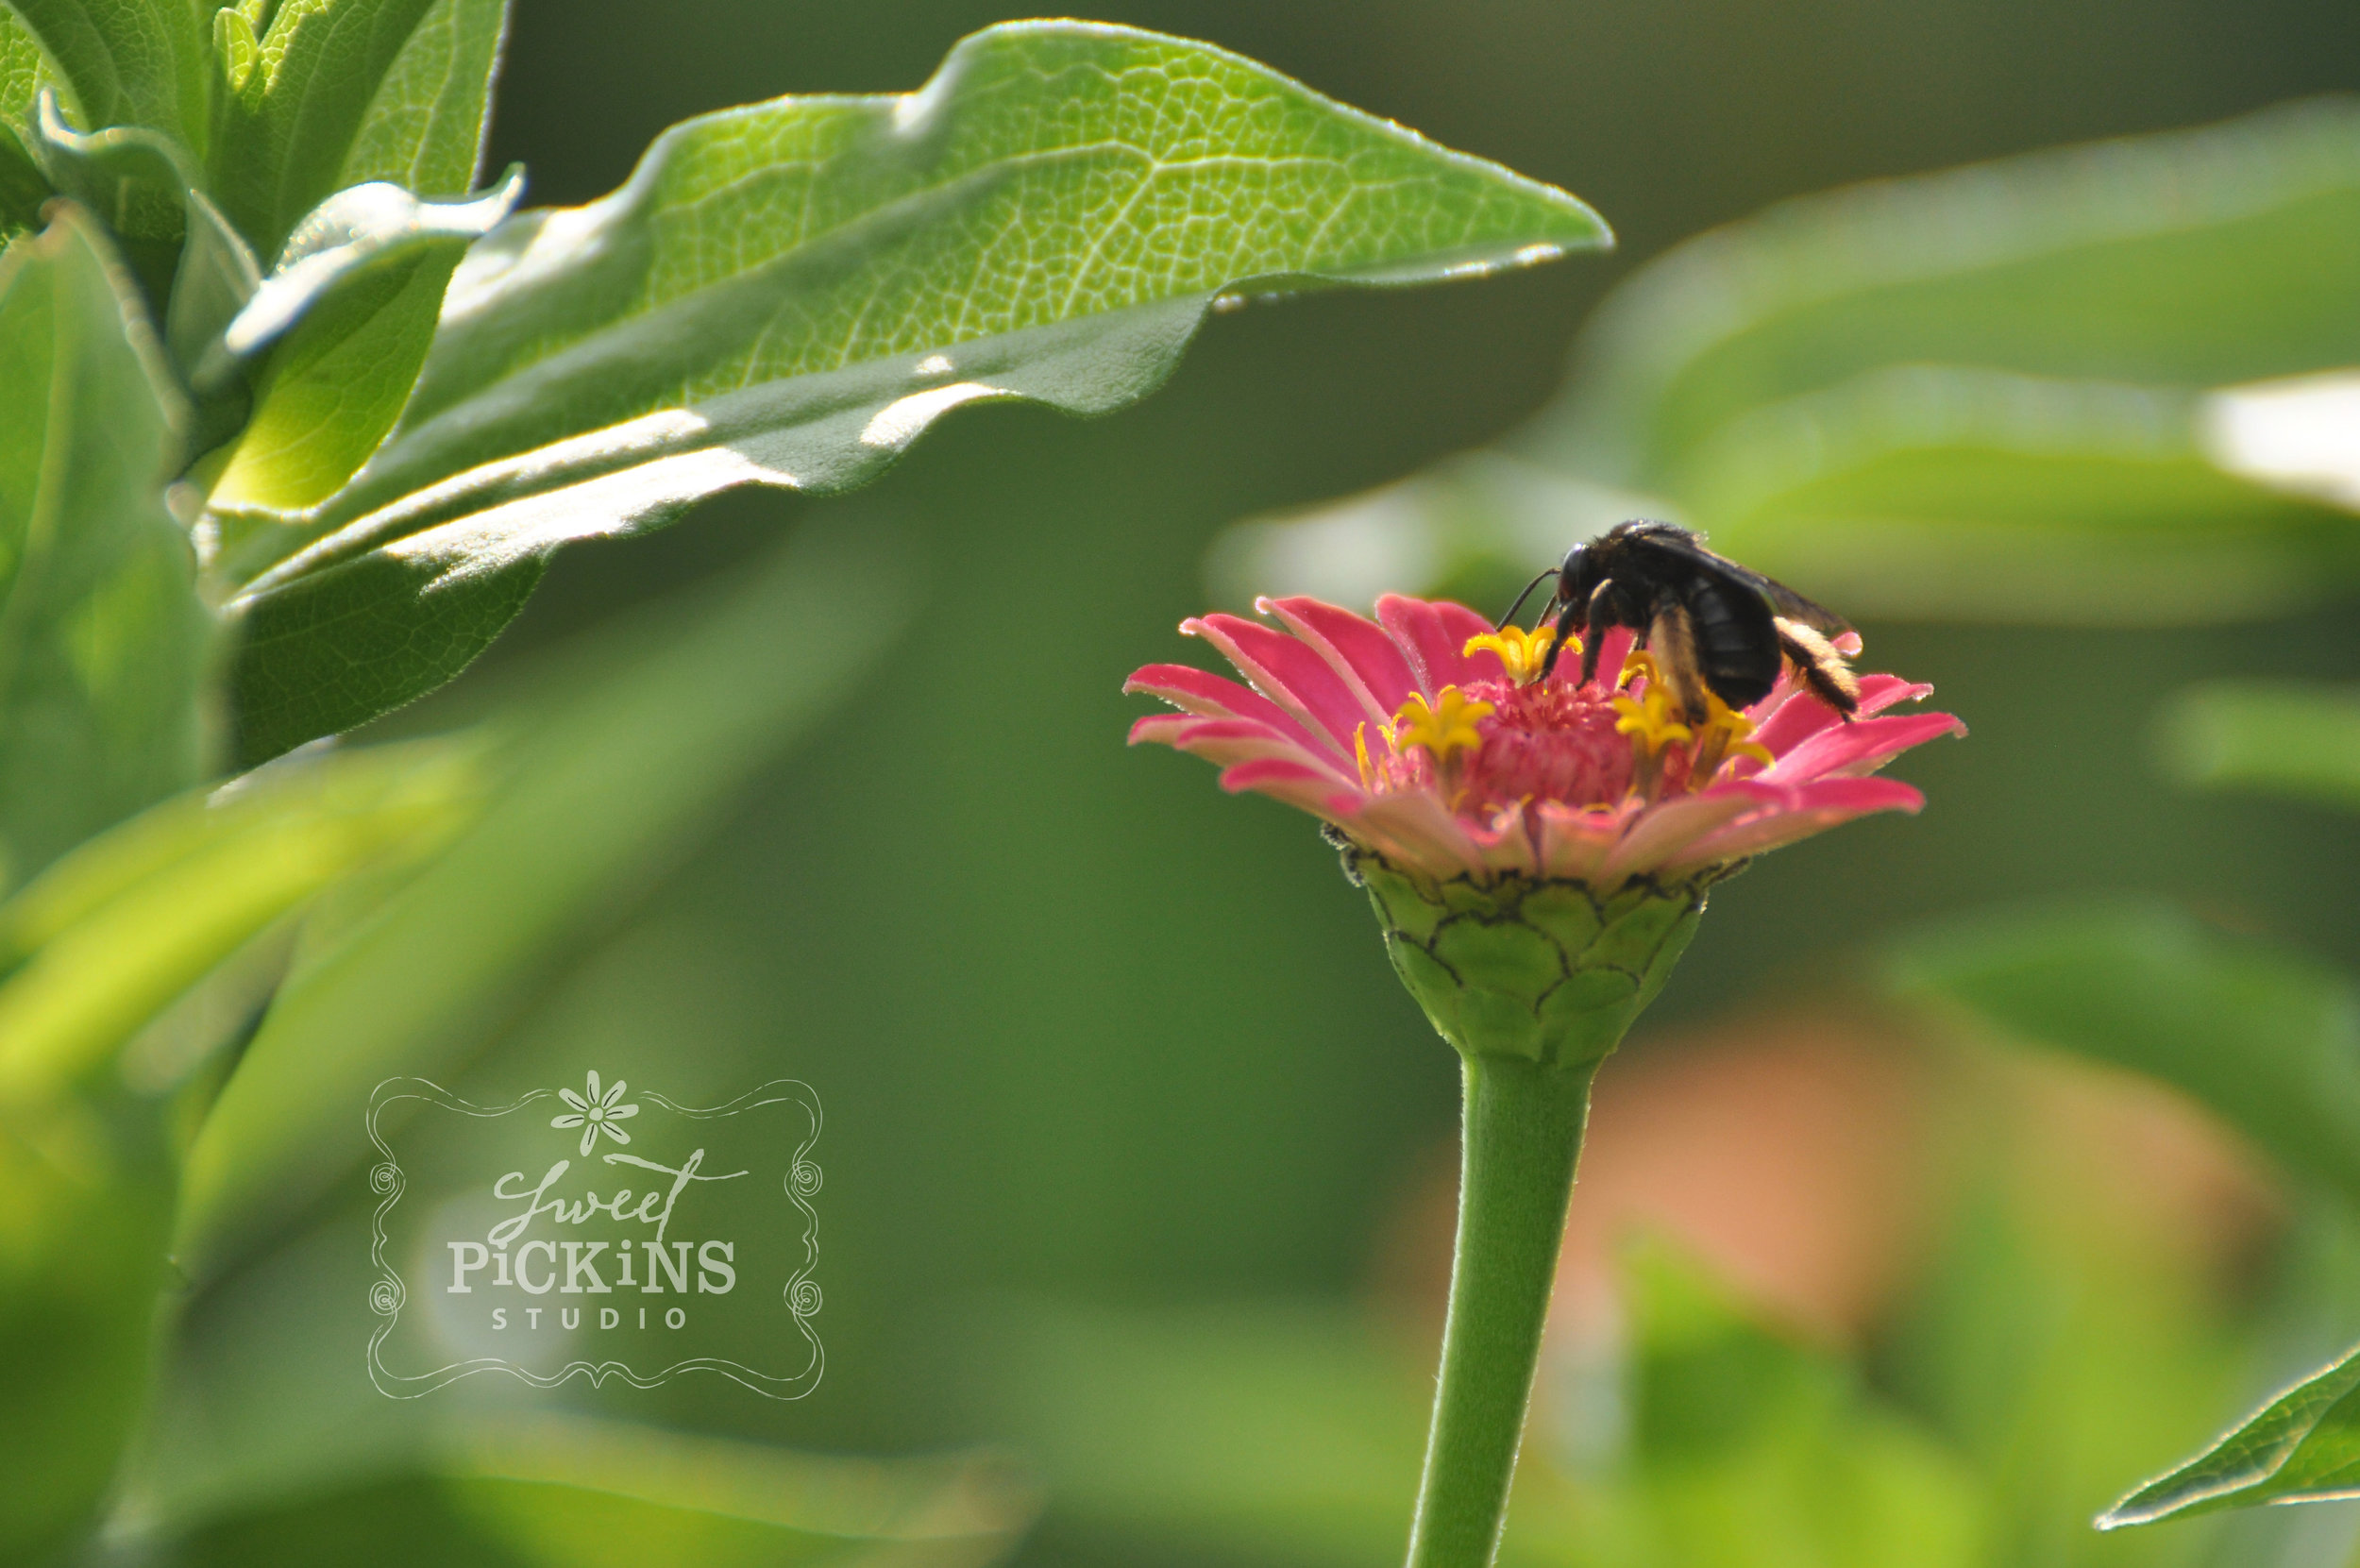 Garden Photography by Sweet Pickins Studio 2018